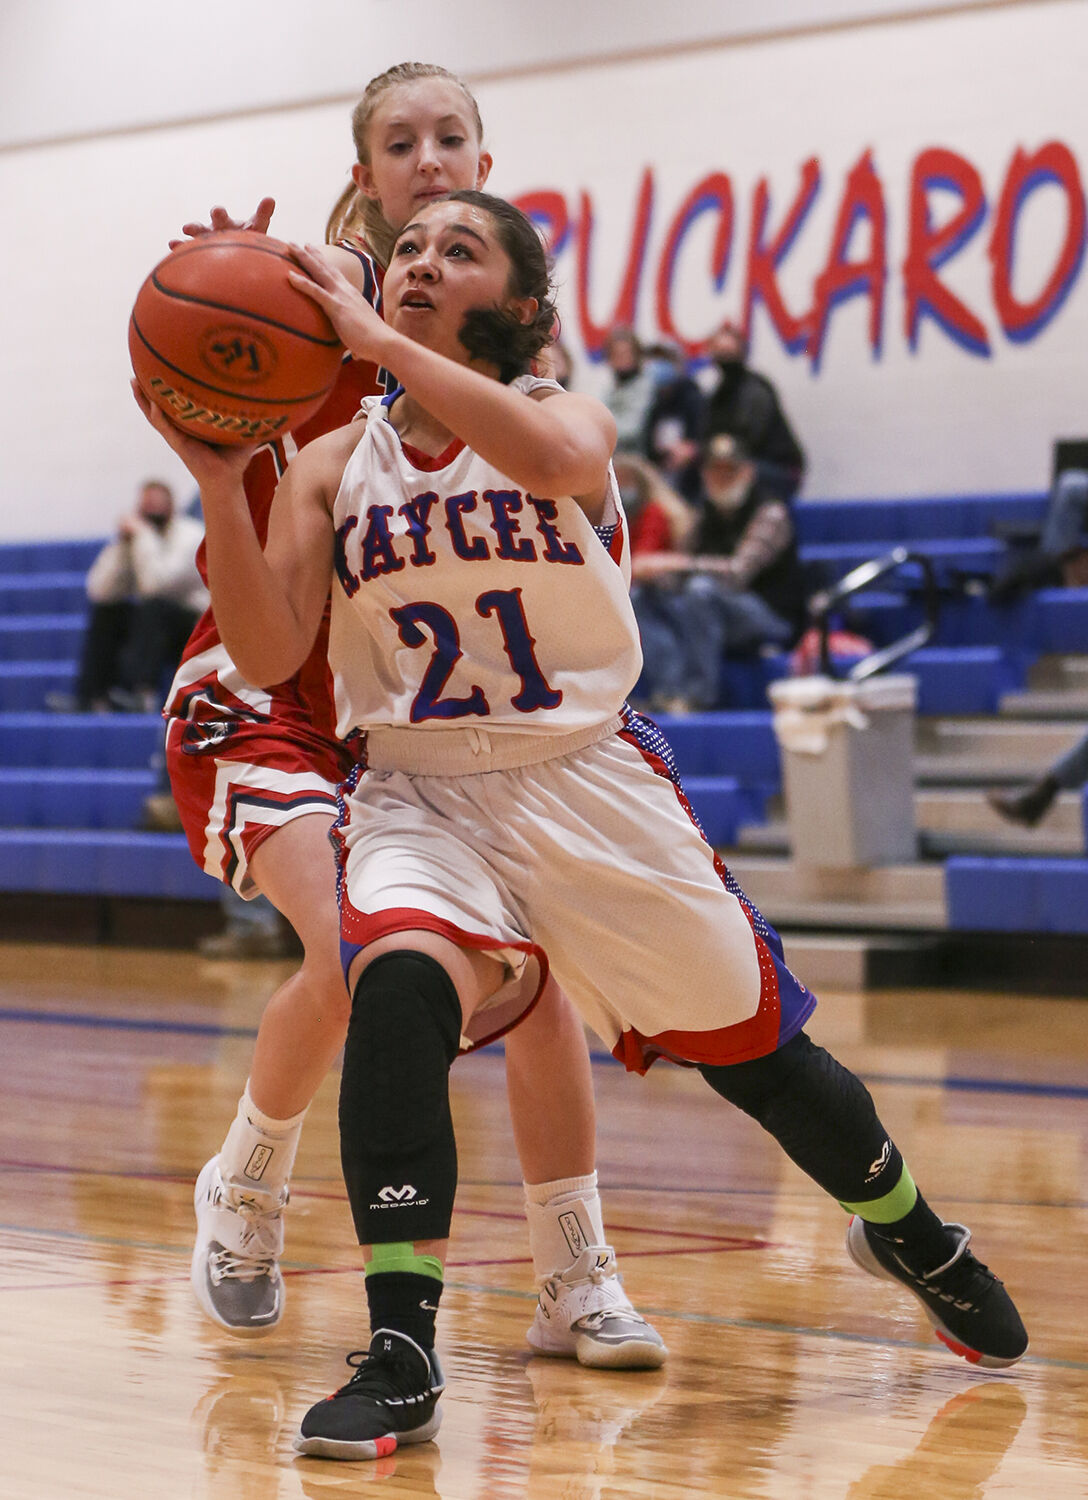 Mary Cleveland pushes away from a defender toward the basket